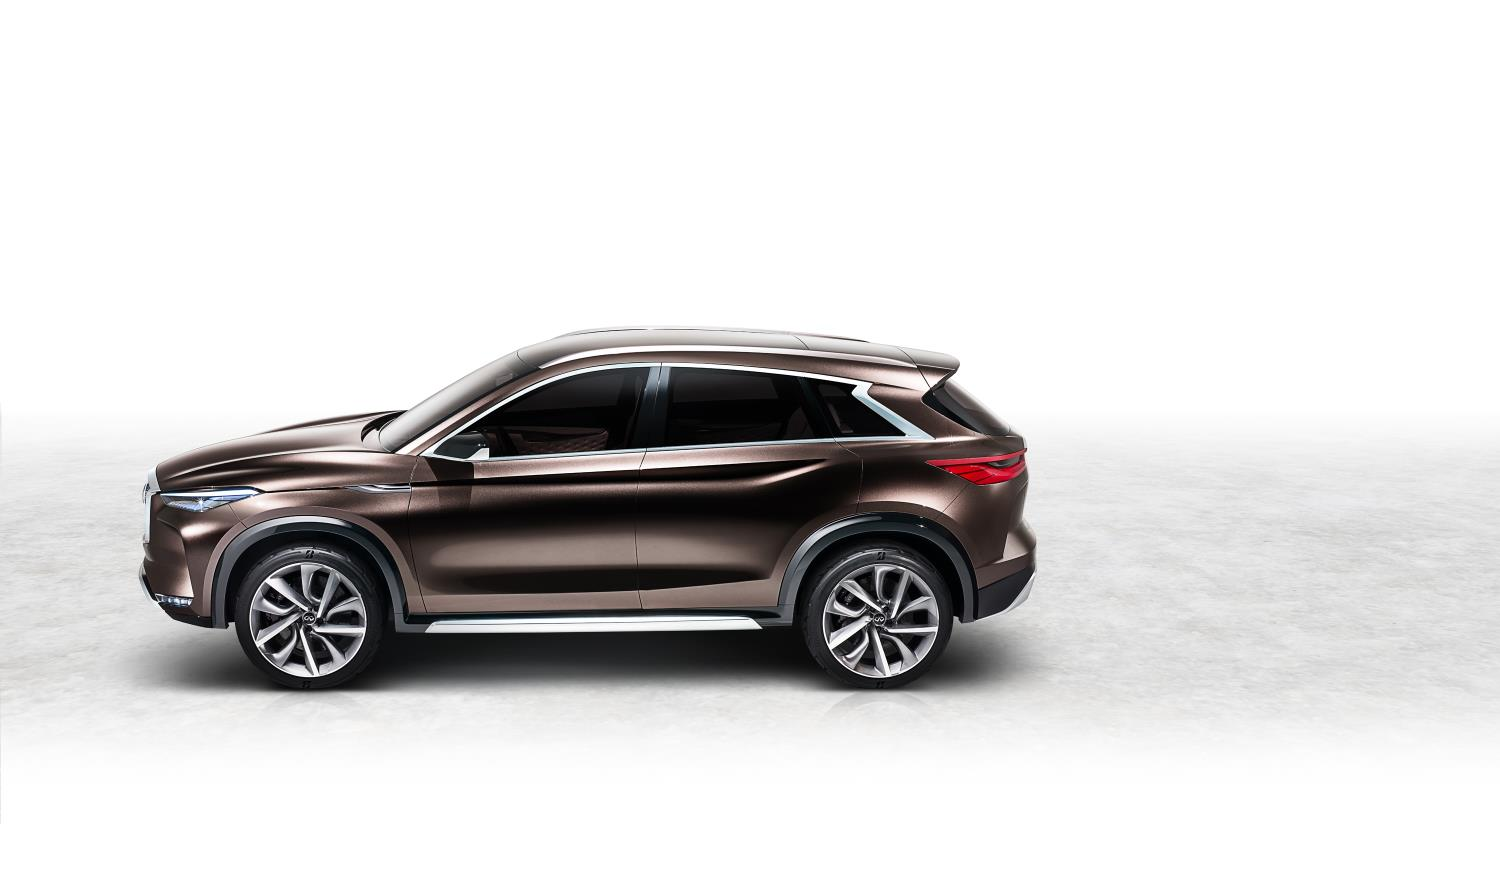 infiniti qx50 concept has variable compression, is almost production